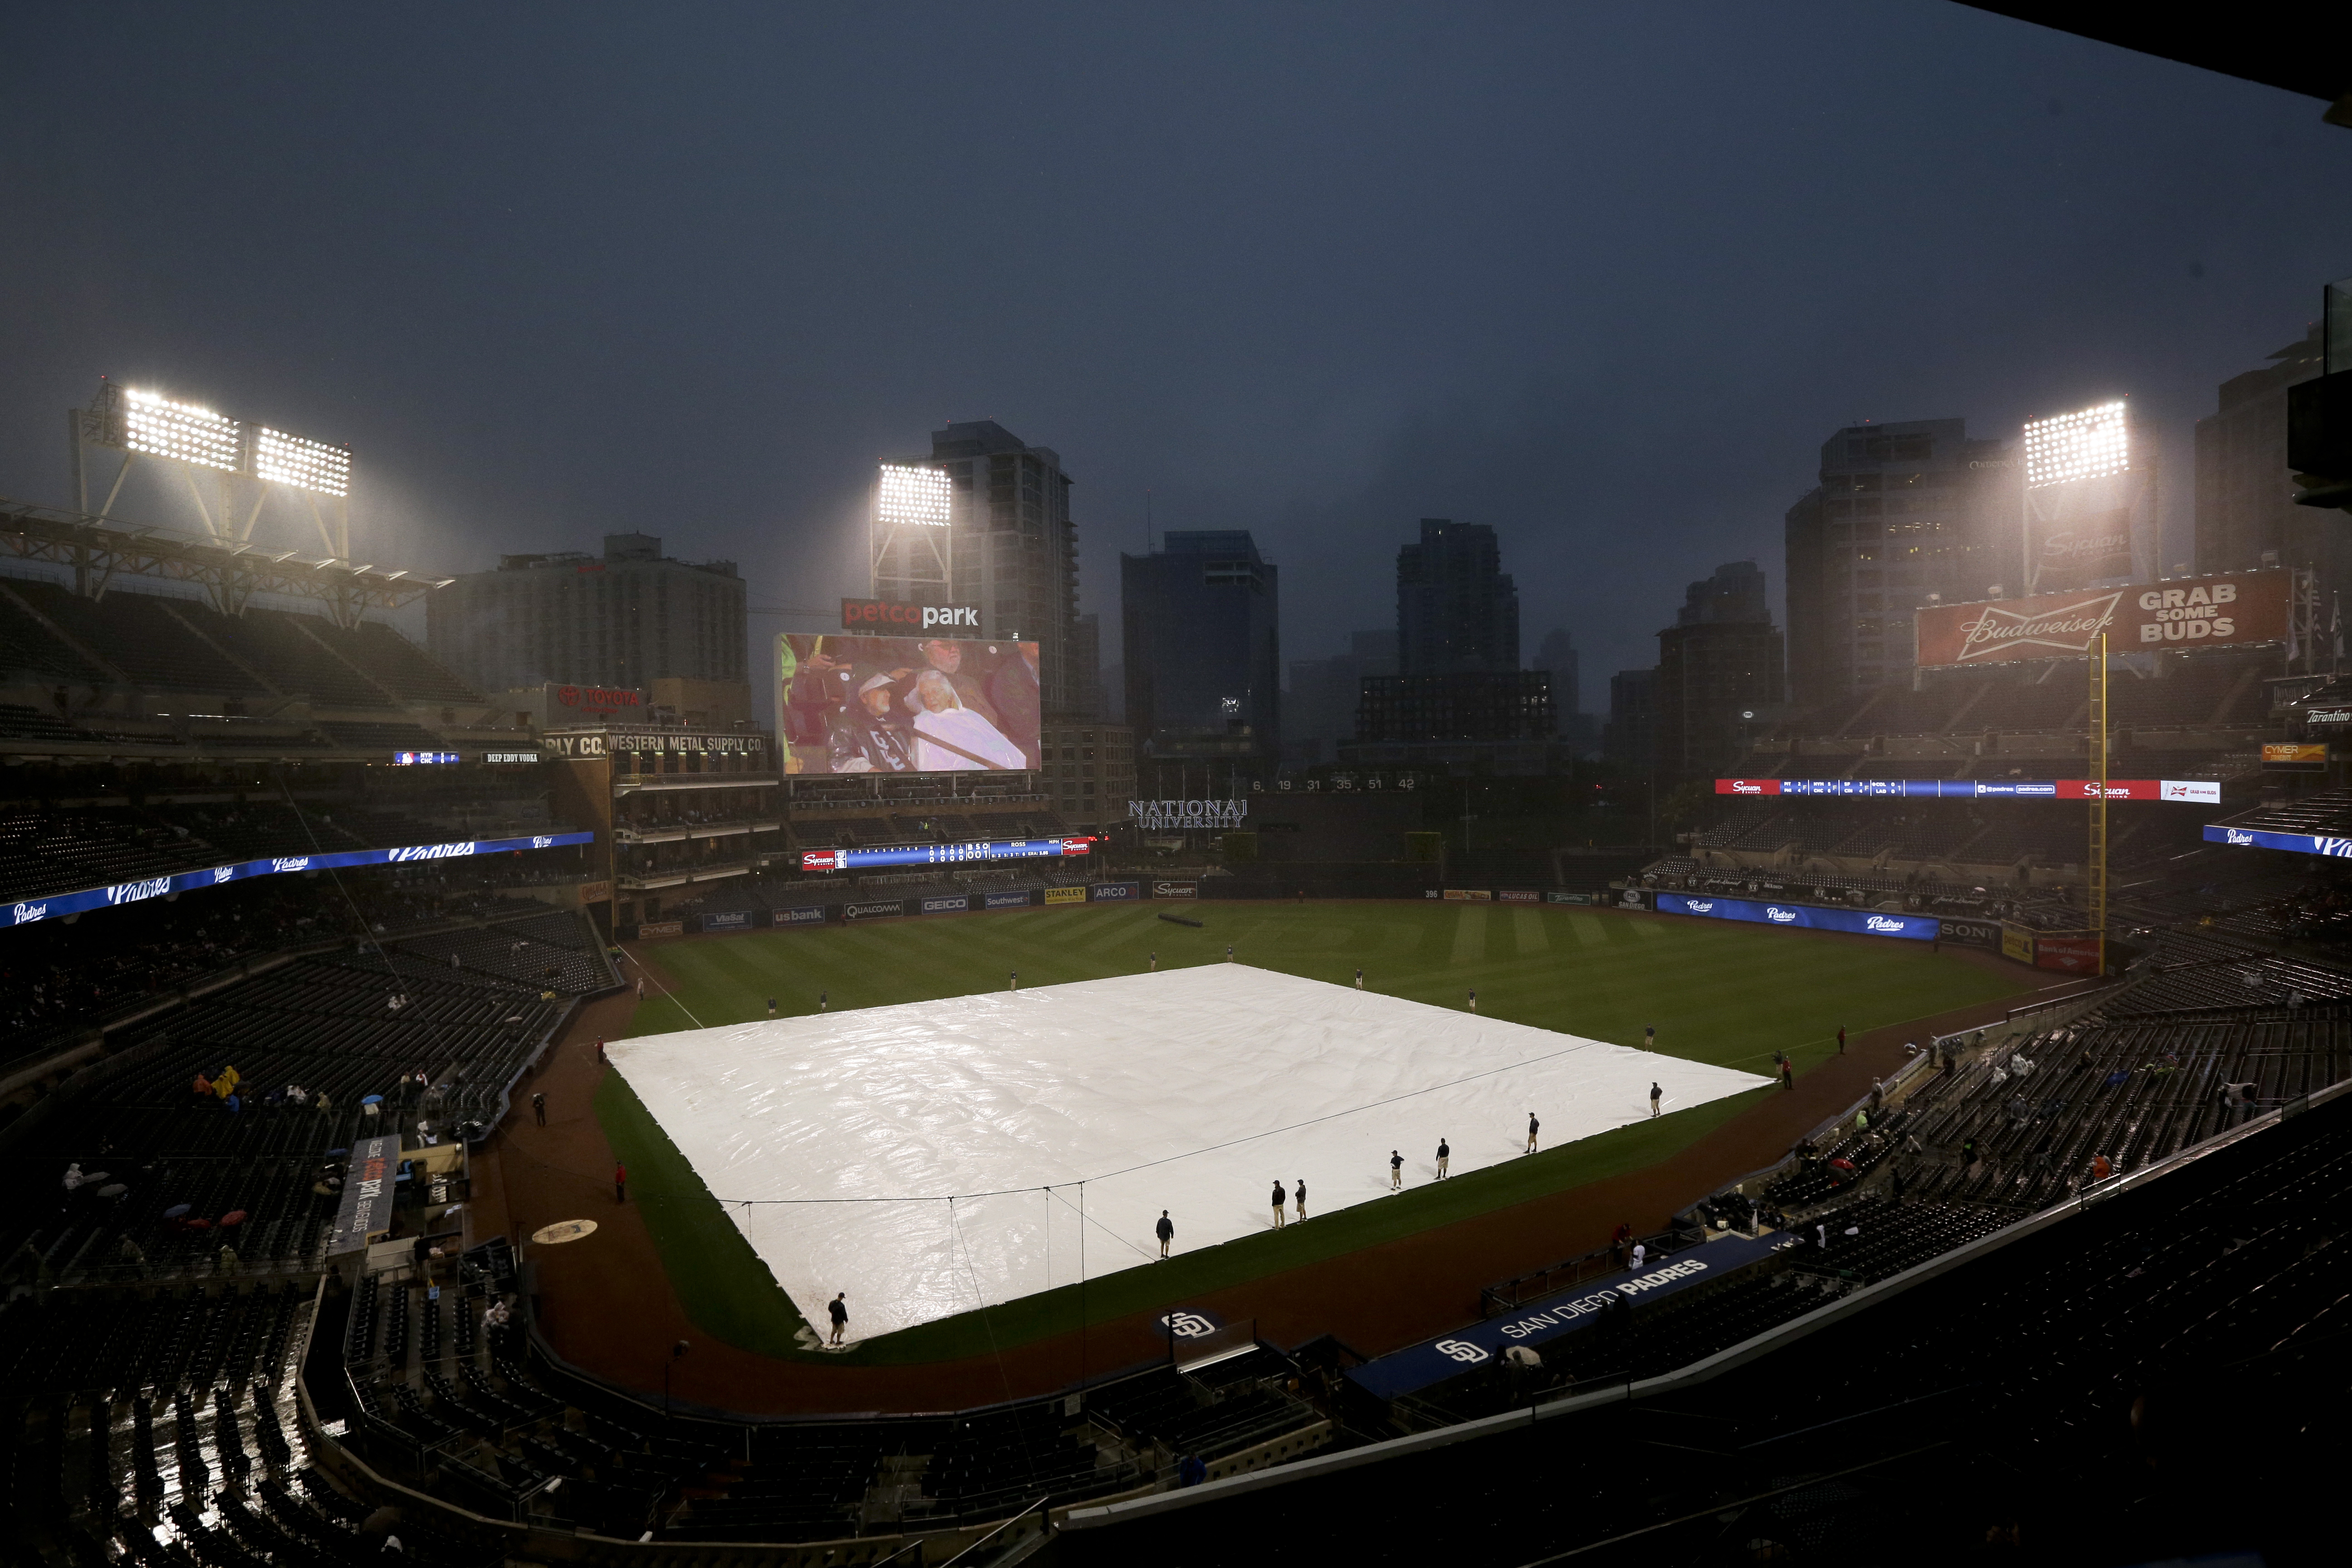 The infield at Petco Park sits covered during a rain delay in a baseball game between the San Diego Padres and the Washington Nationals on Thursday, May 14, 2015, in San Diego. (AP Photo/Gregory Bull)